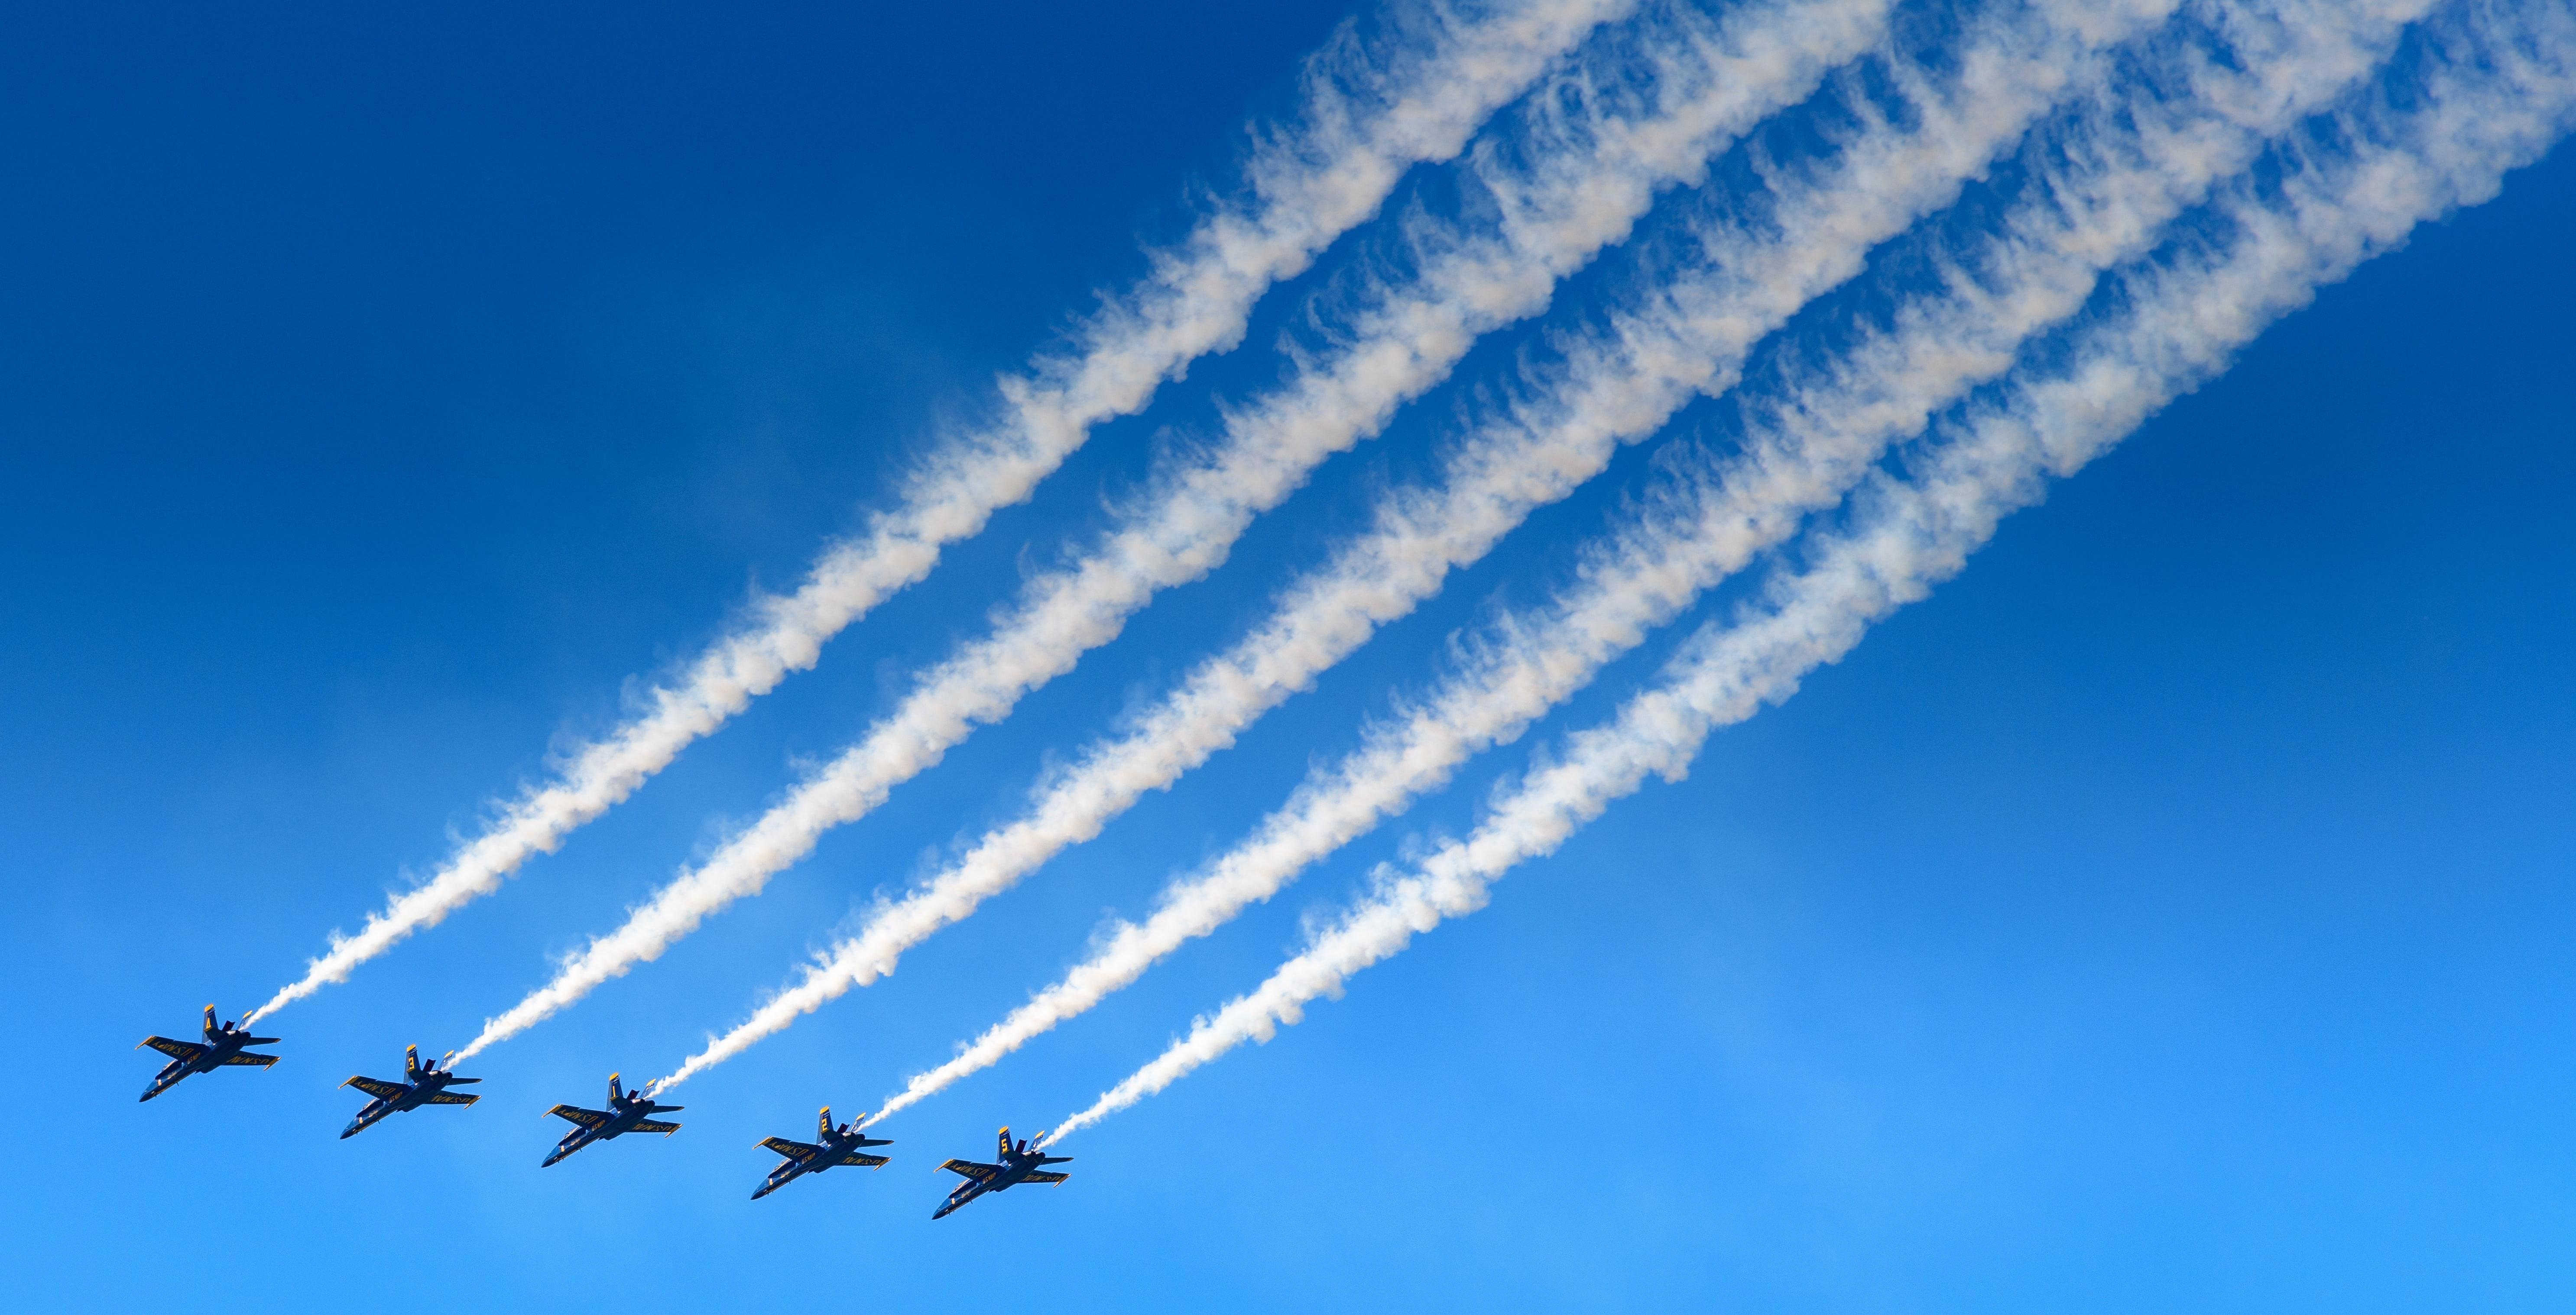 five aircraft contrail